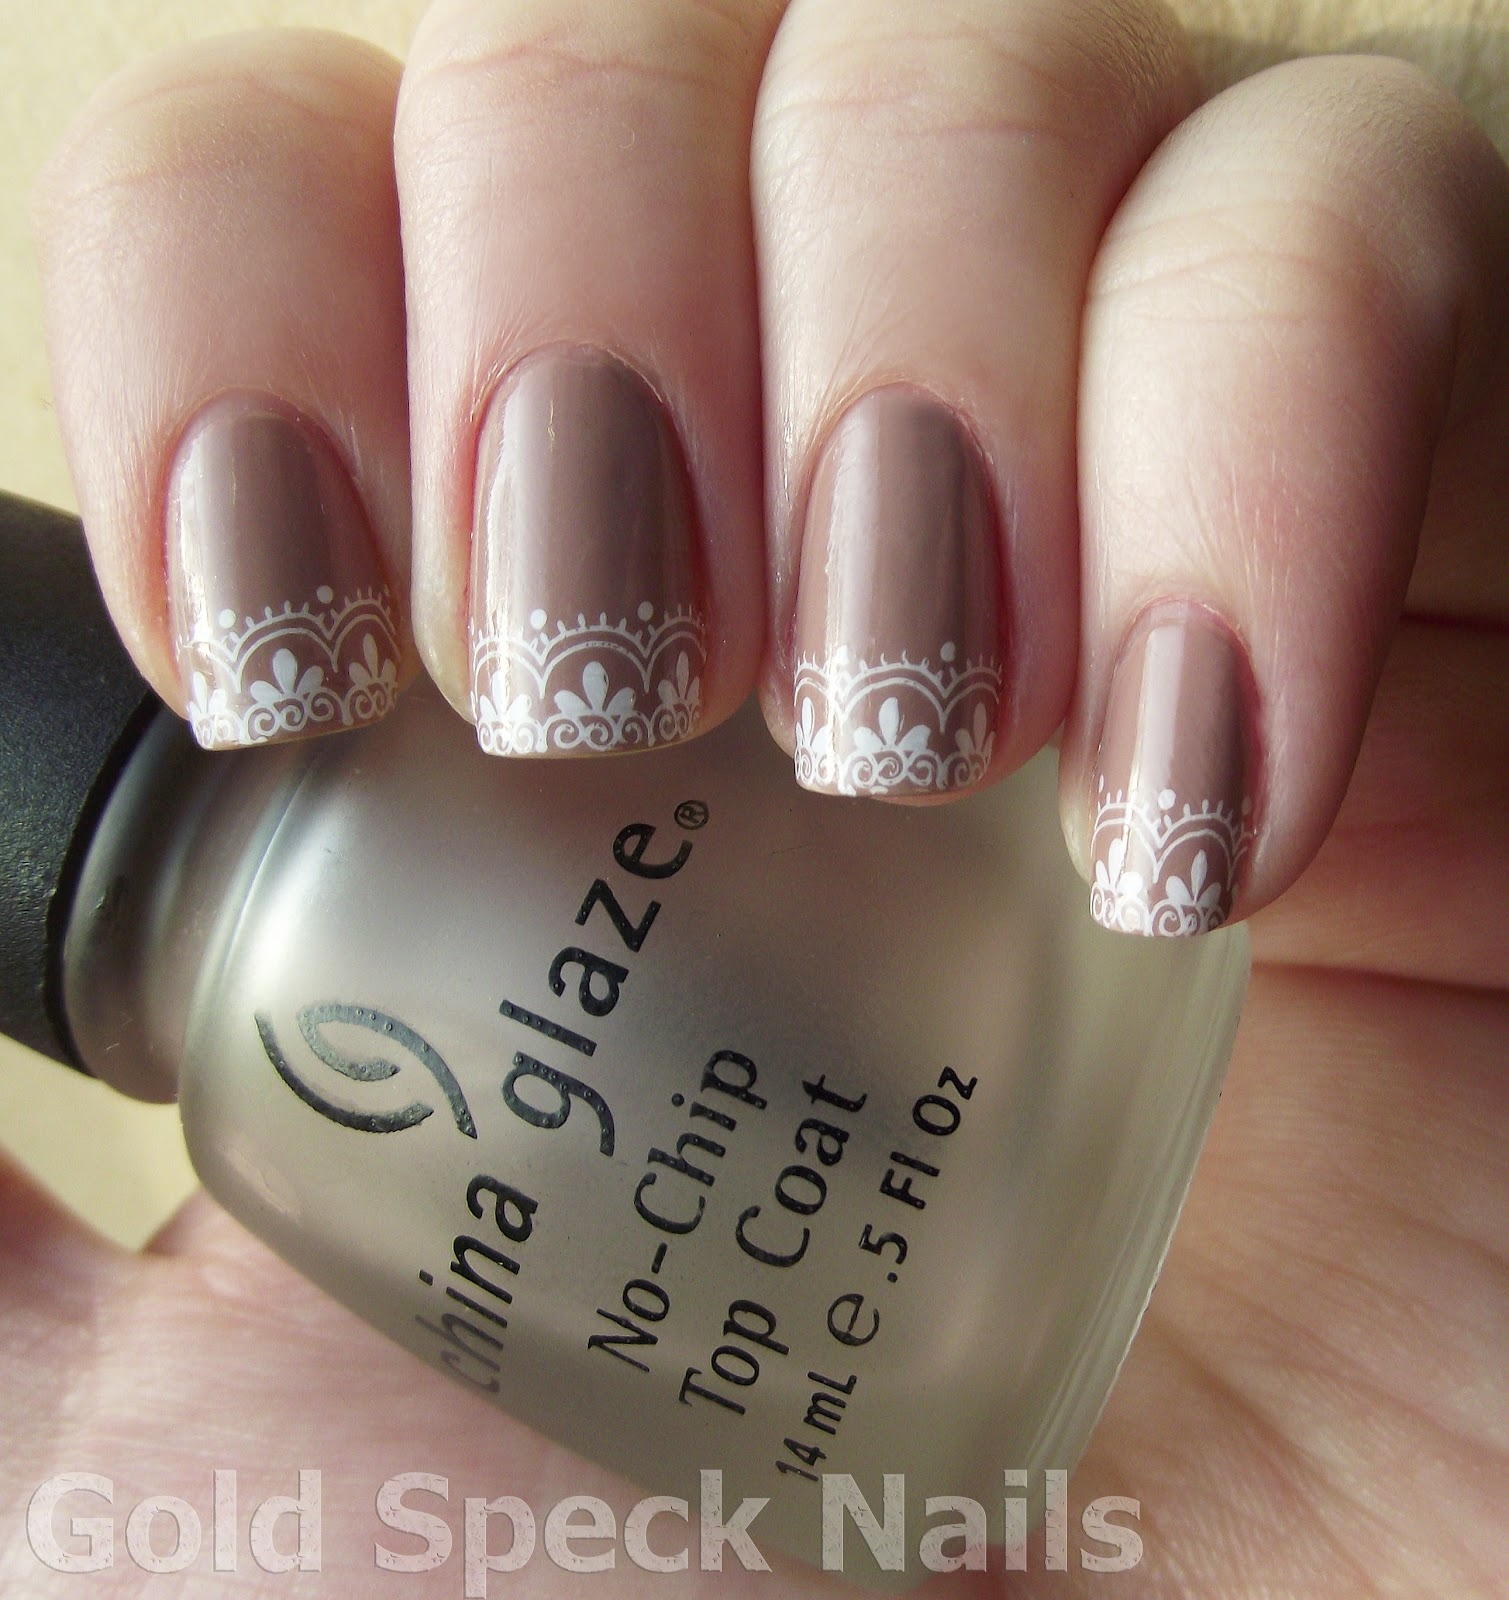 Gold Speck Nails: February 2012